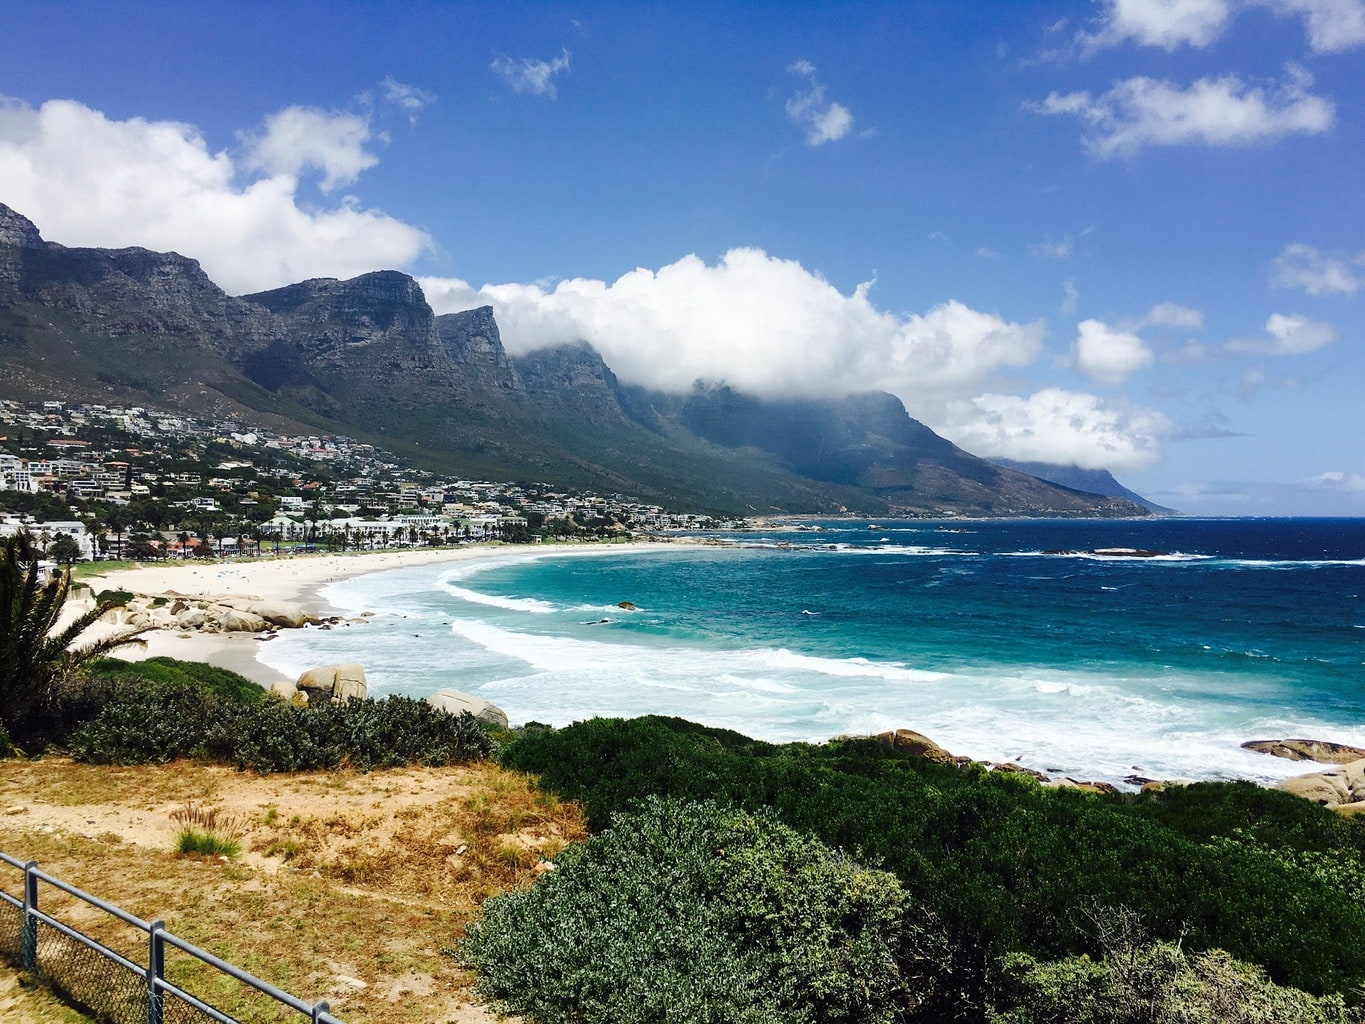 The white sand beaches of Camps Bay